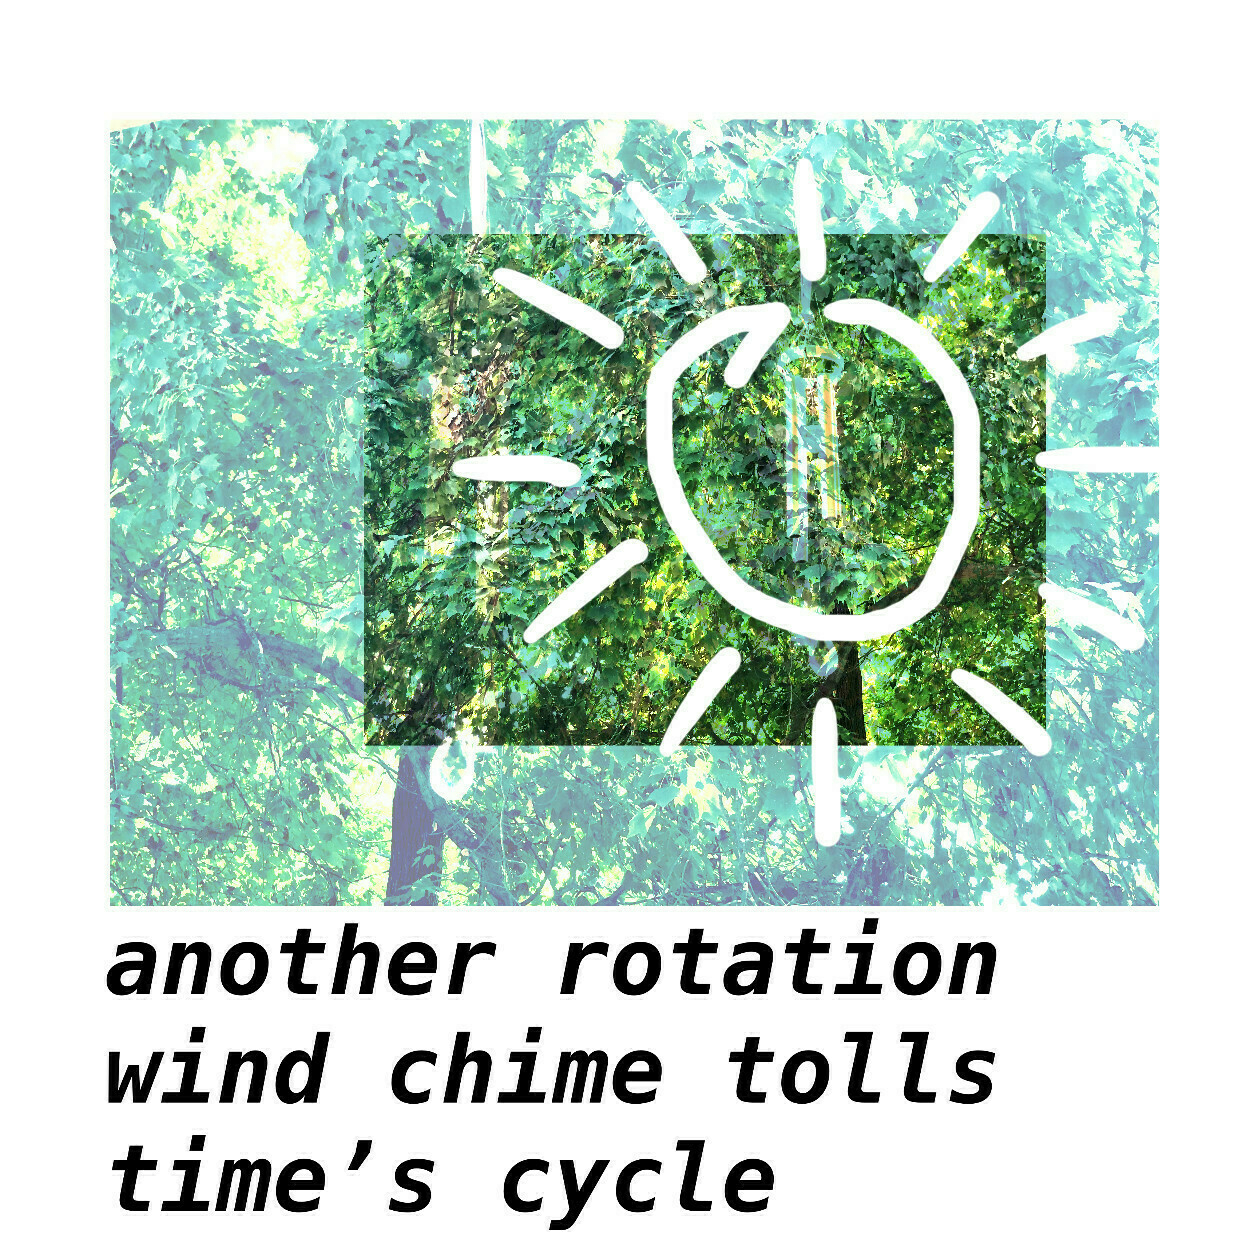 another rotation wind chime tolls time's cycle